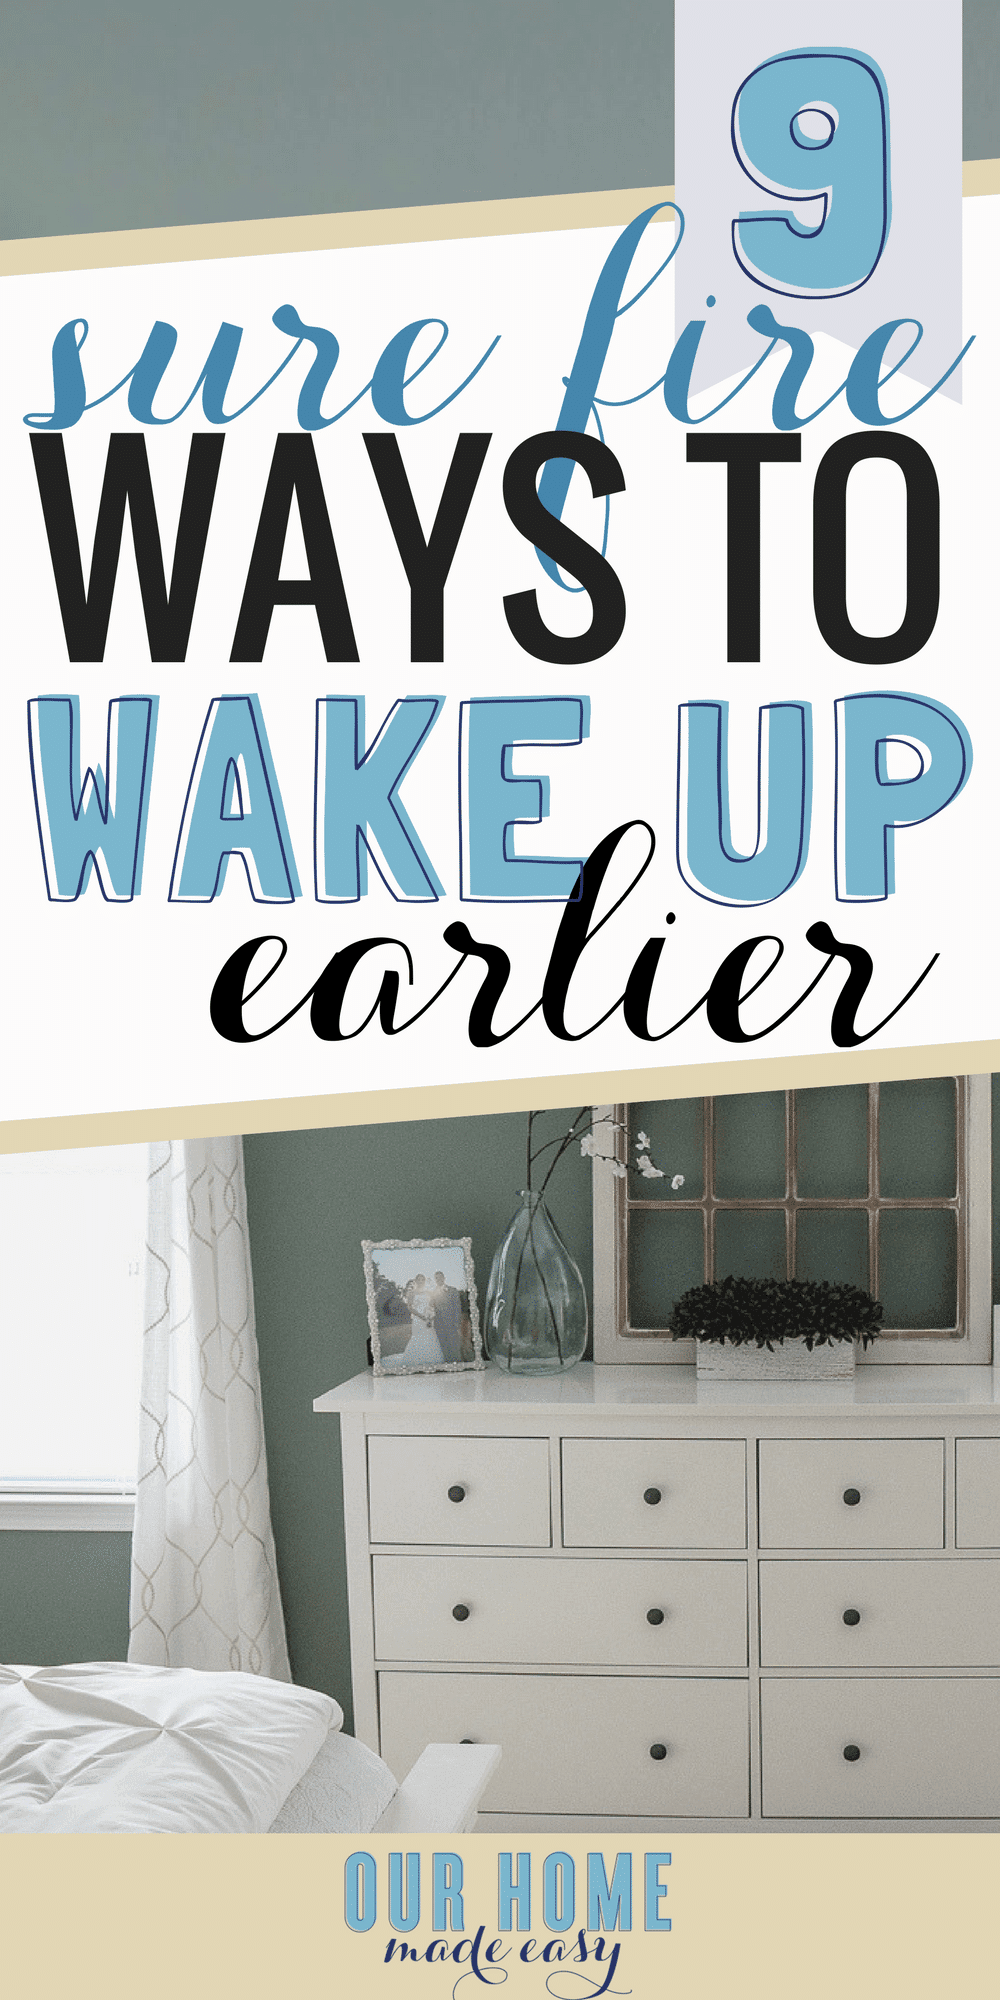 Waking up earlier every day doesn't have to be a struggle! Find your motivation and use one of the tips above to make every day better with an early start! #mornings #wakingup #workingmom #howtowakeup #alarmclock #mornings